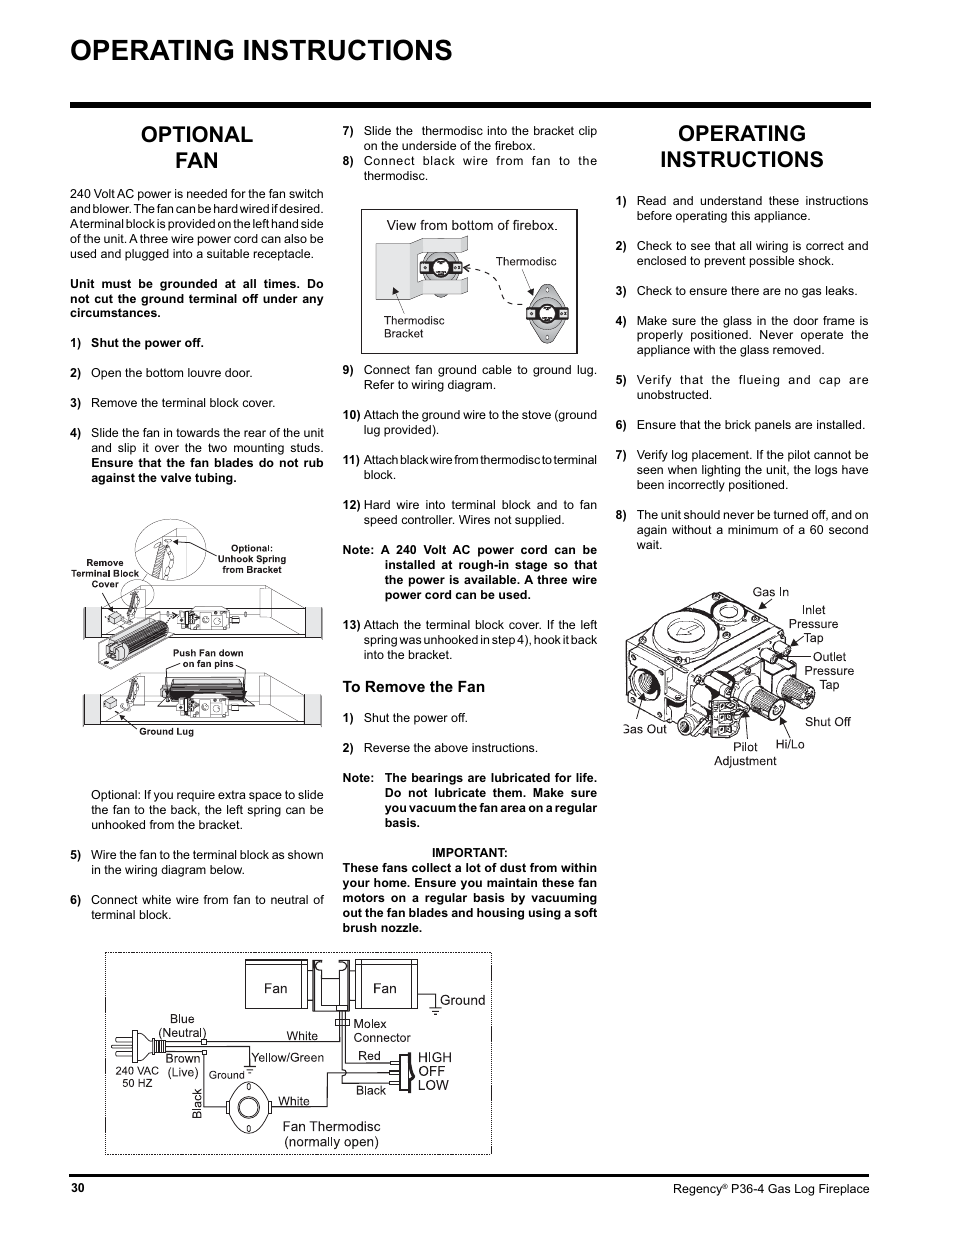 Operating Instructions Optional Fan Regency Wraps P36 Lpg4 User Wire Diagram Manual Page 30 44